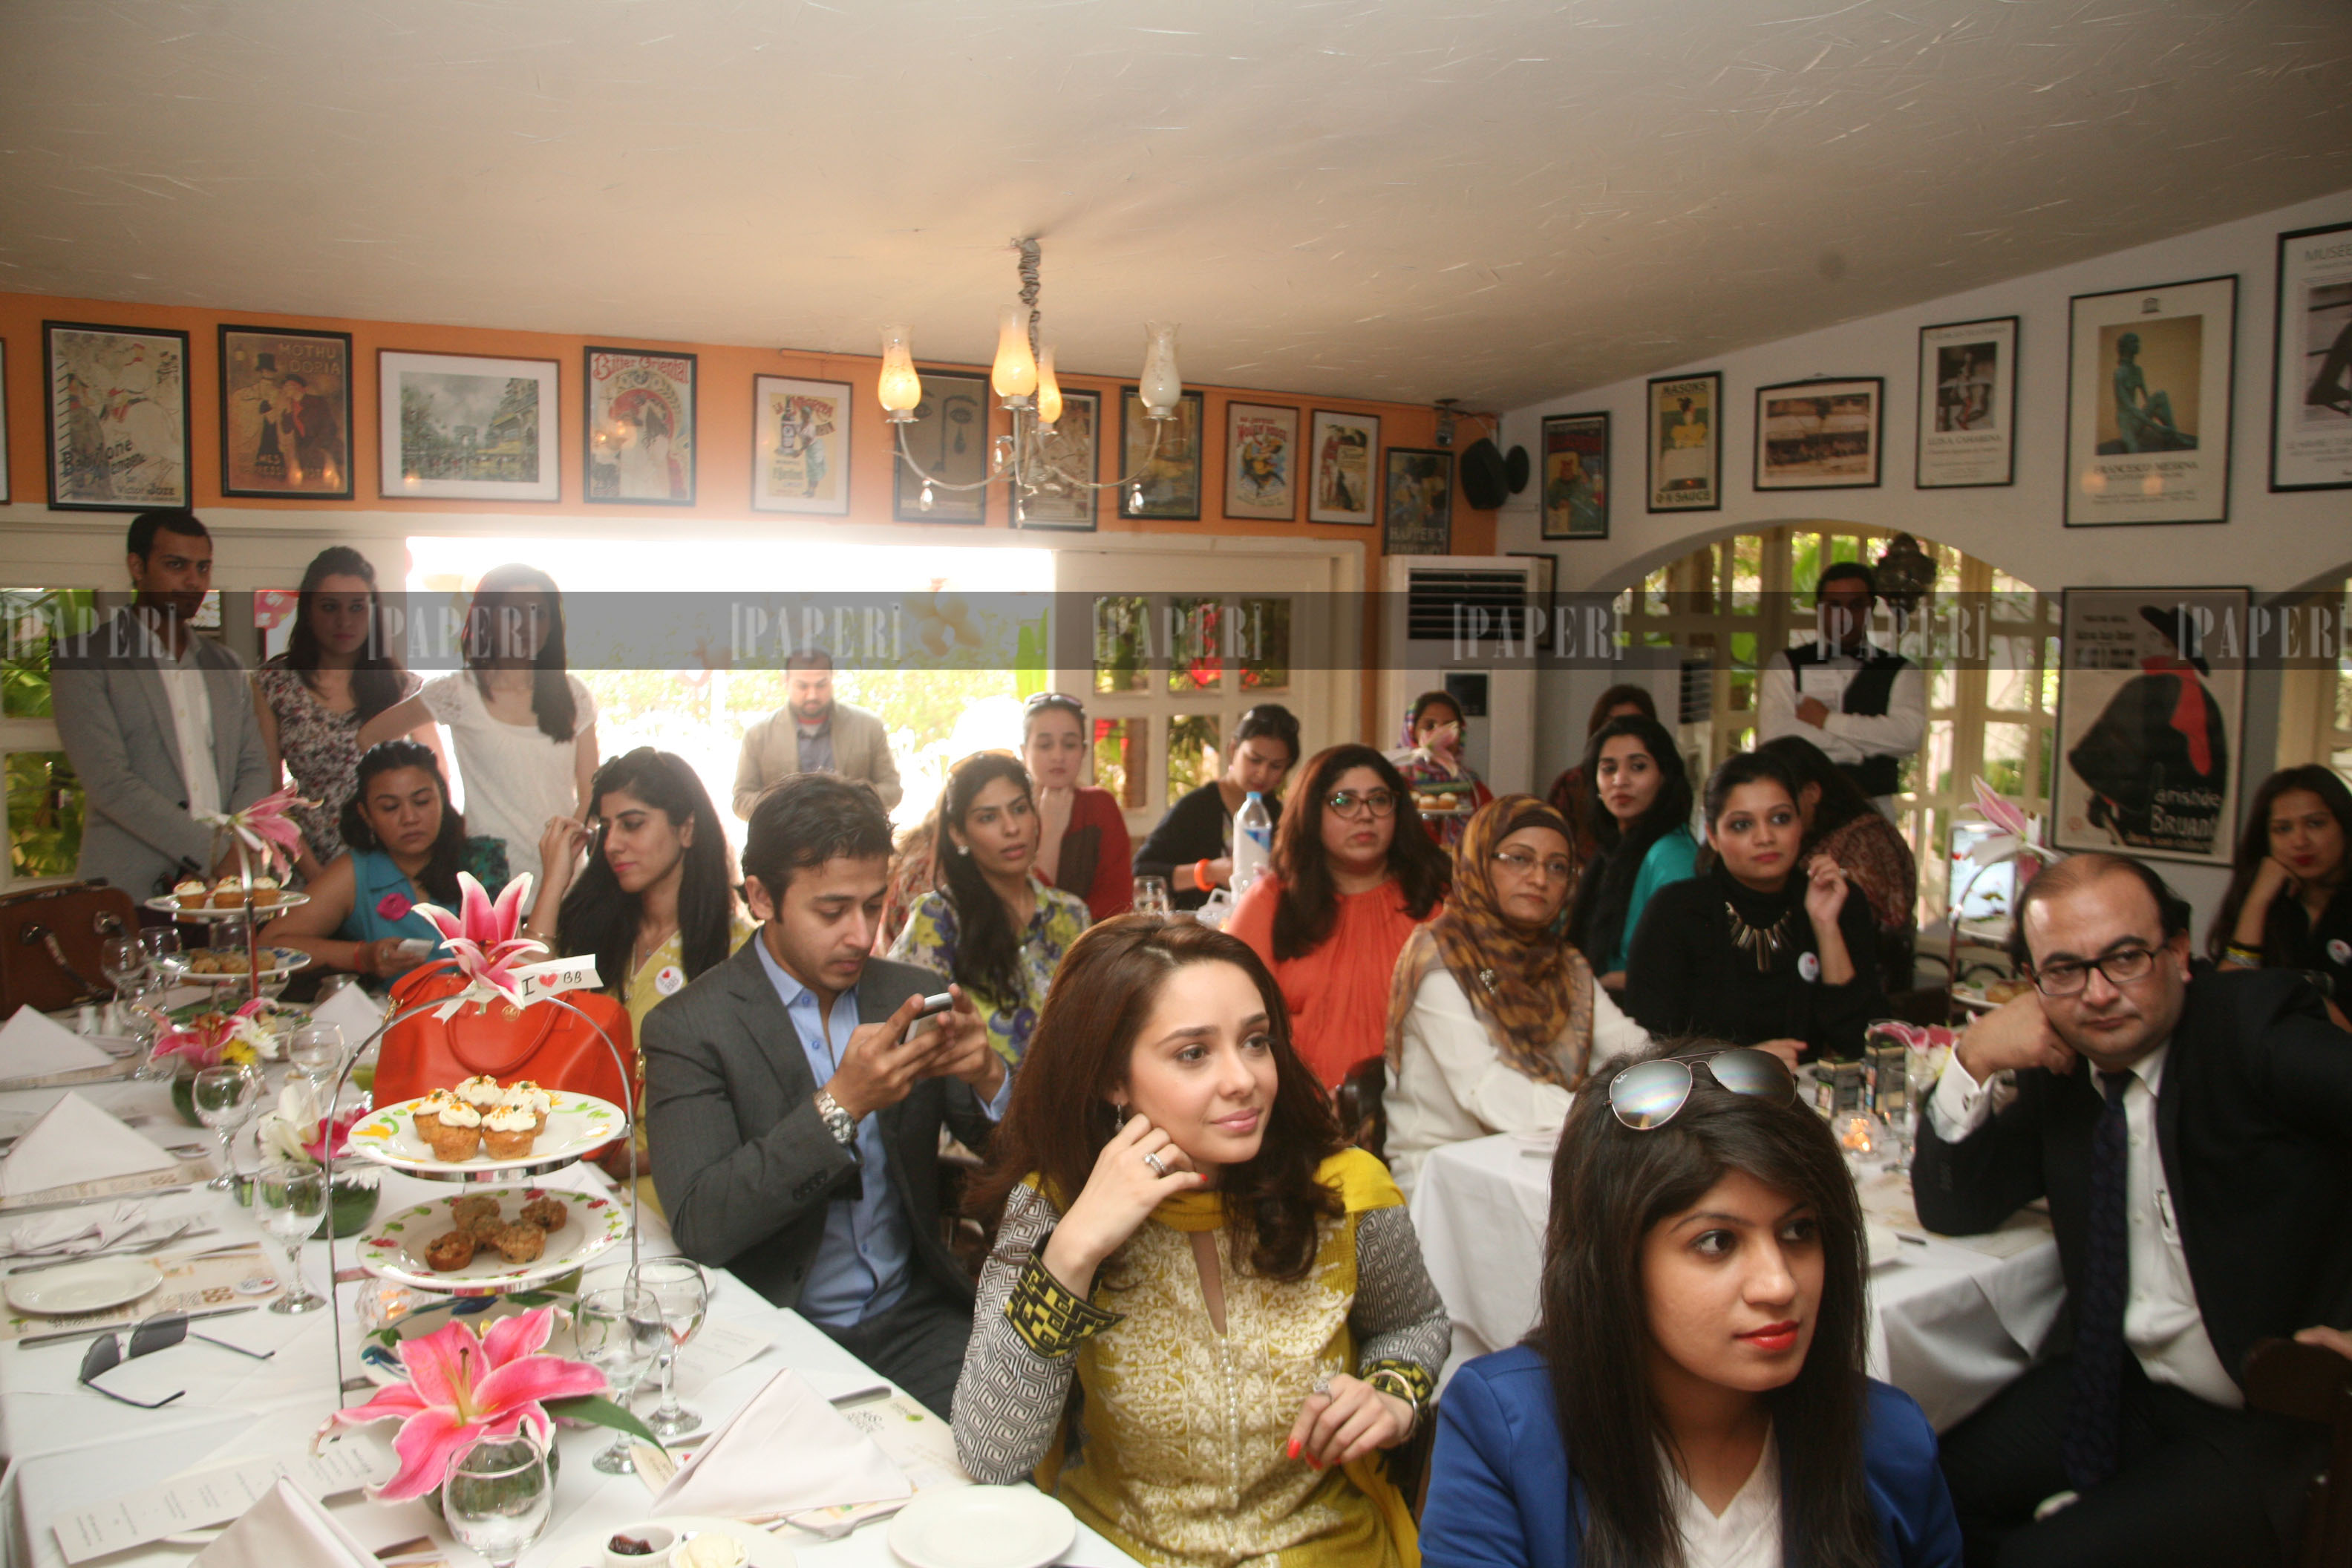 The attendees incuding Garnier Spokesperson Juggun Kazim at the event